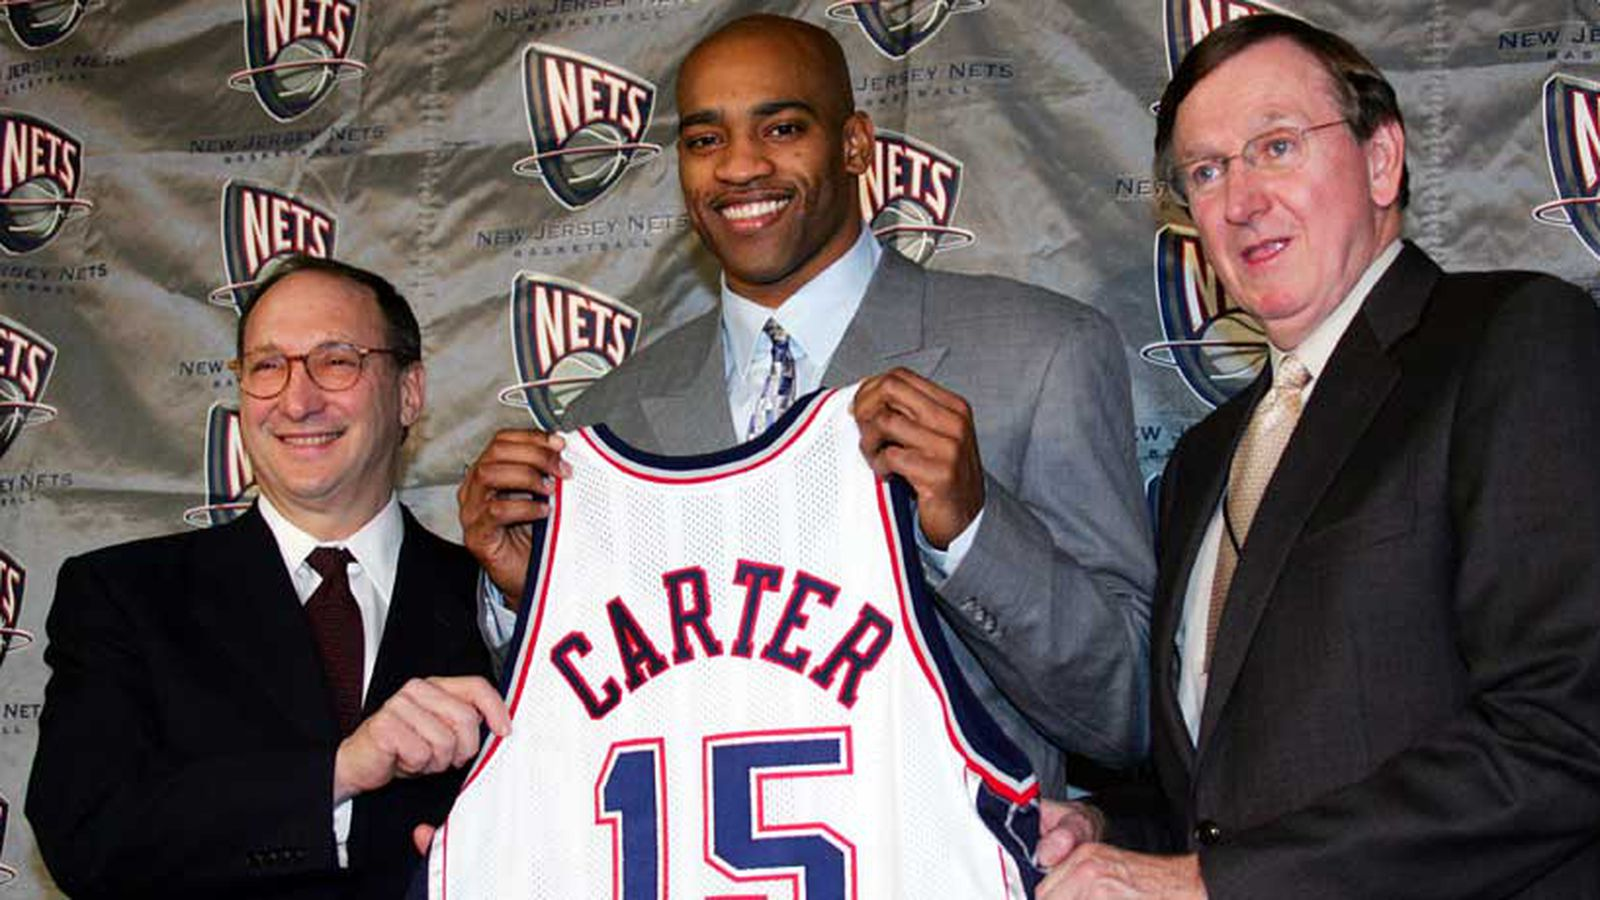 the early life and career of vince carter